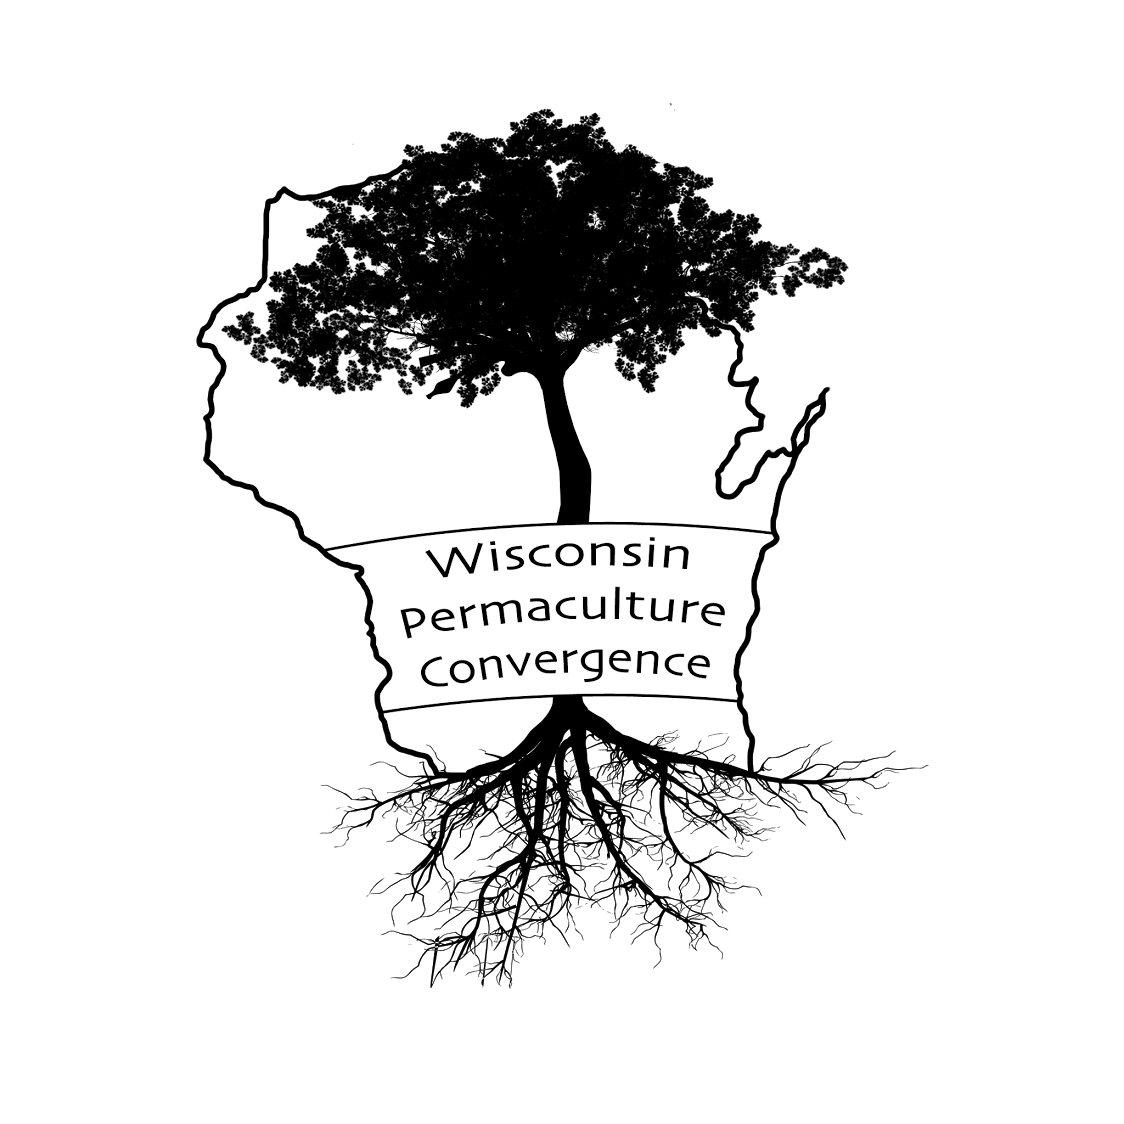 Wisconsin Permaculture Convergence